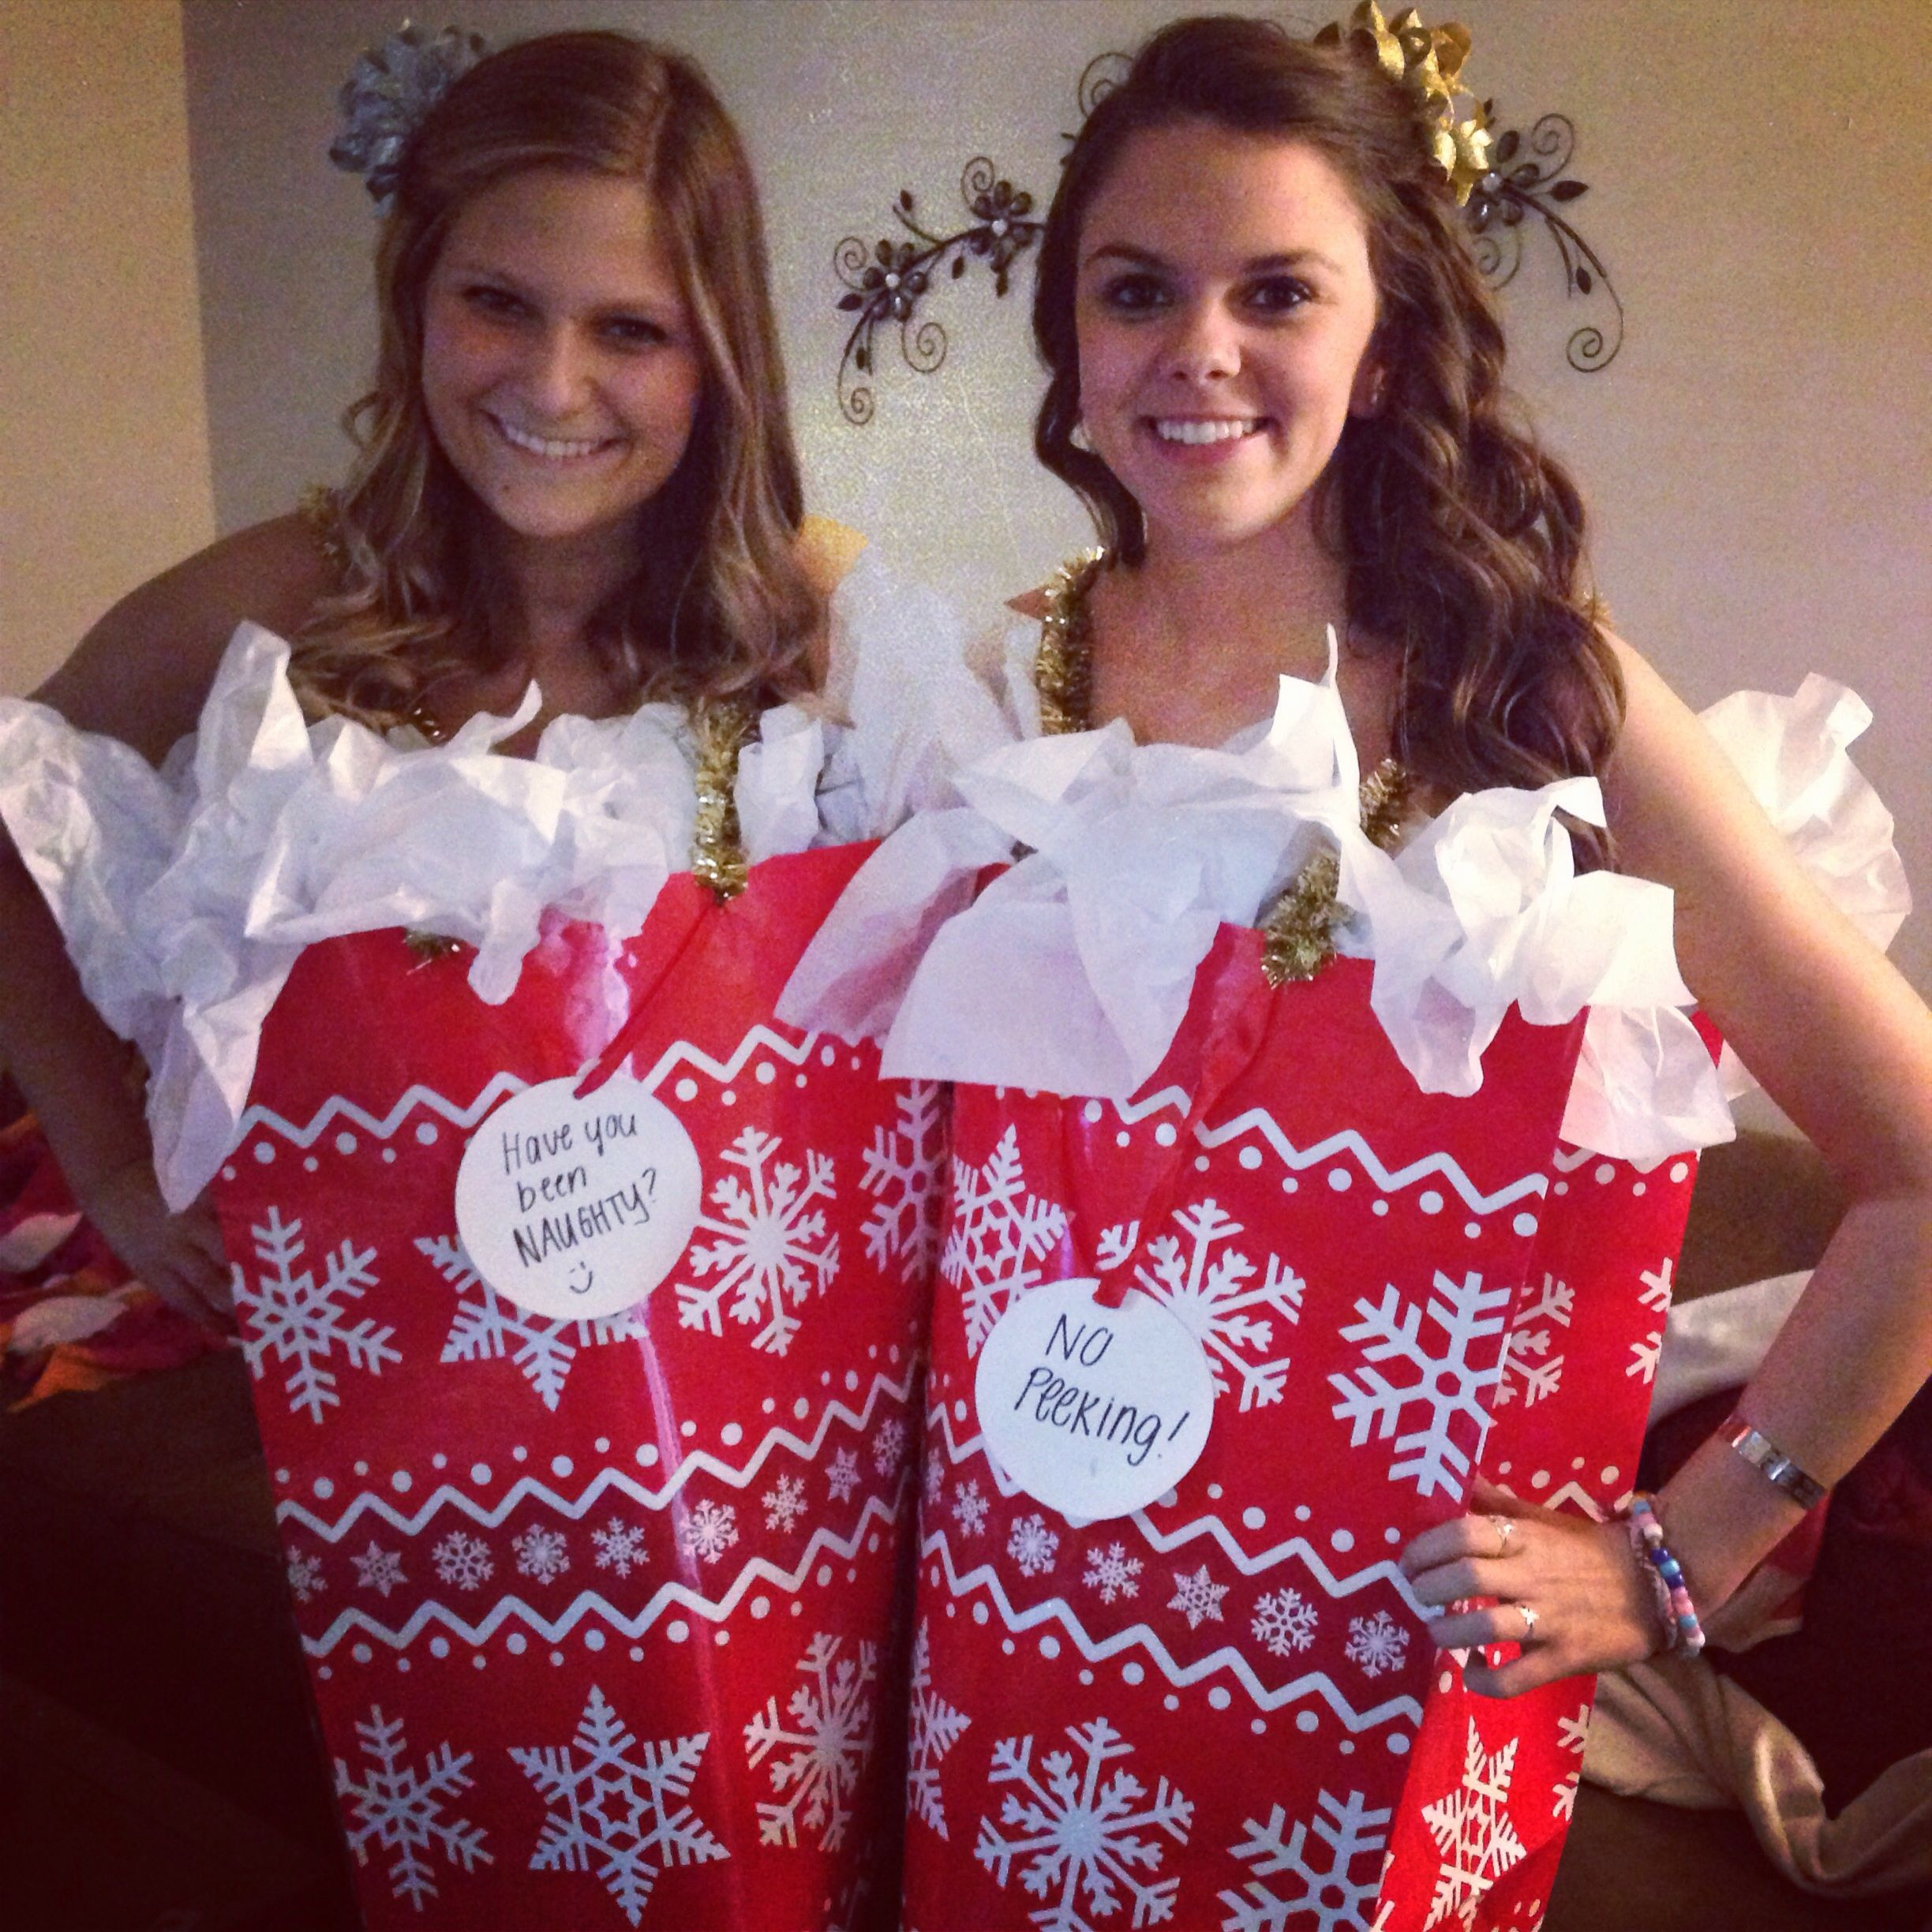 Christmas gift bag costume #diy #christmas #costume @Rachel Ashbrook this will be us next year for the grab a date  sc 1 st  Pinterest & Christmas gift bag costume #diy #christmas #costume @Rachel Ashbrook ...